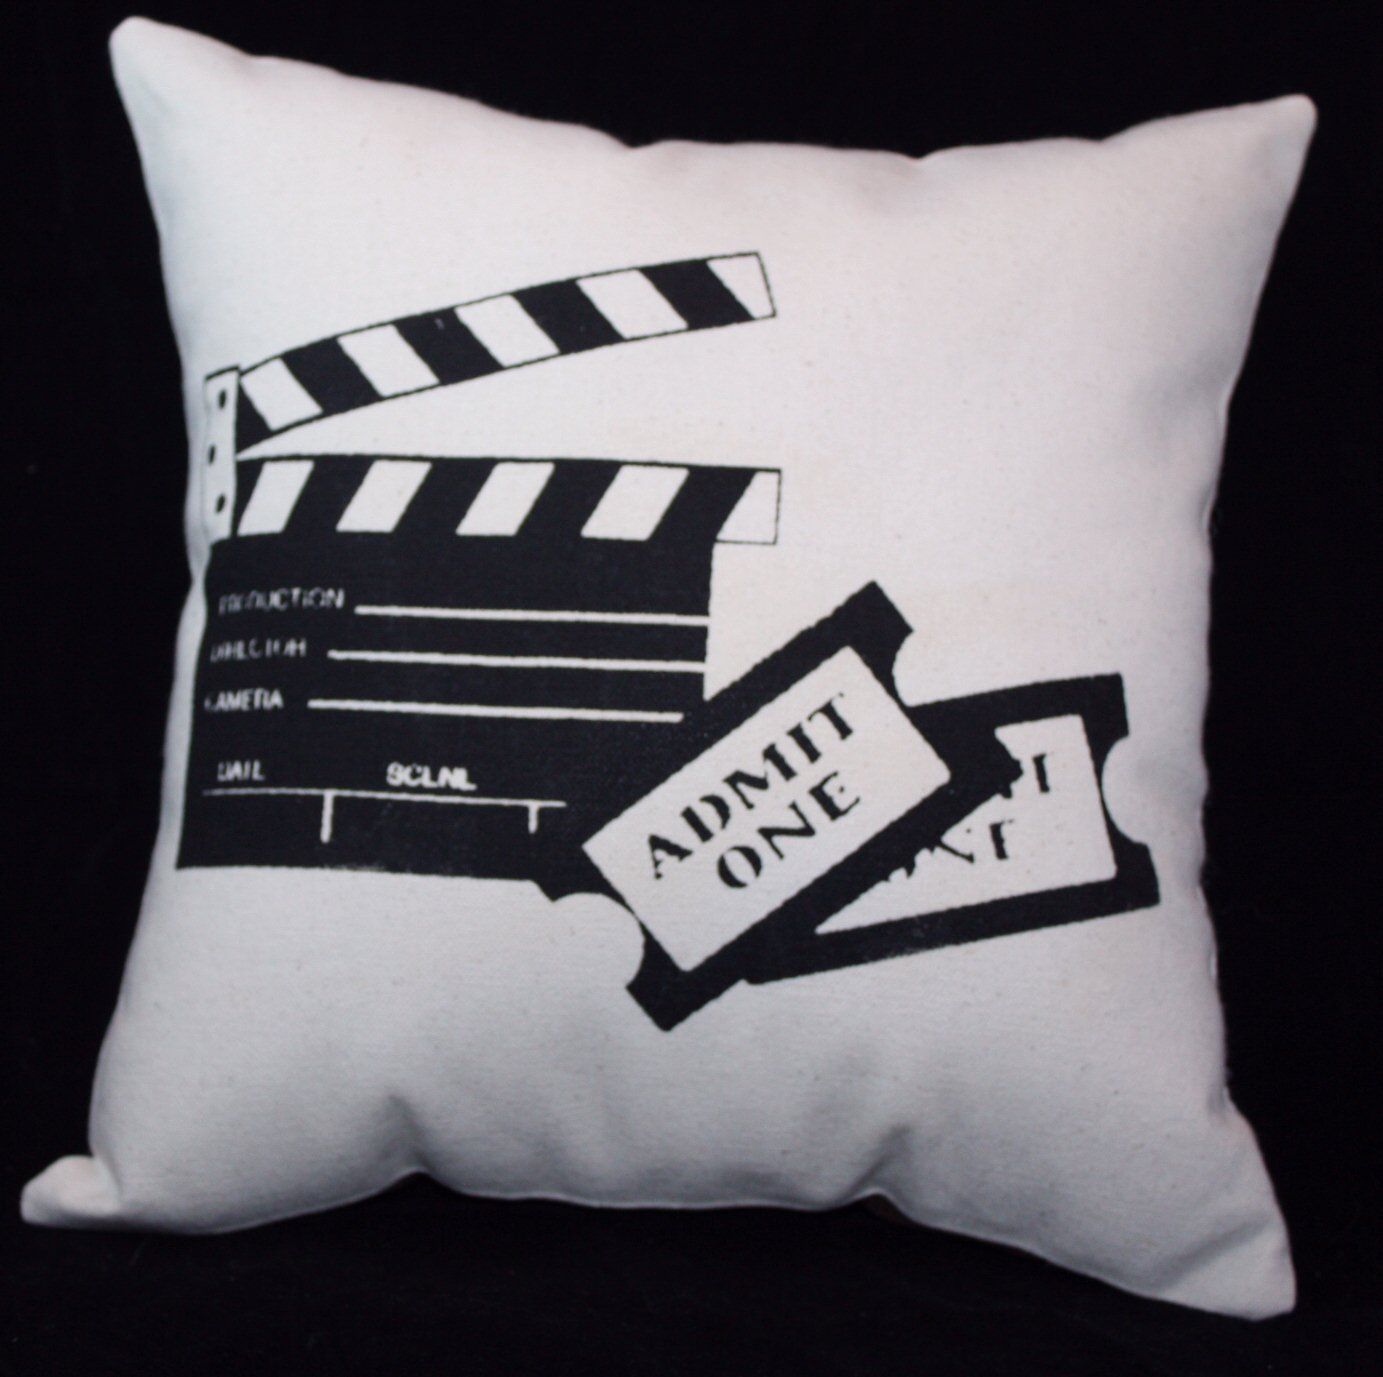 TICKETS PILLOW! Great Movie Theater Home Decor!